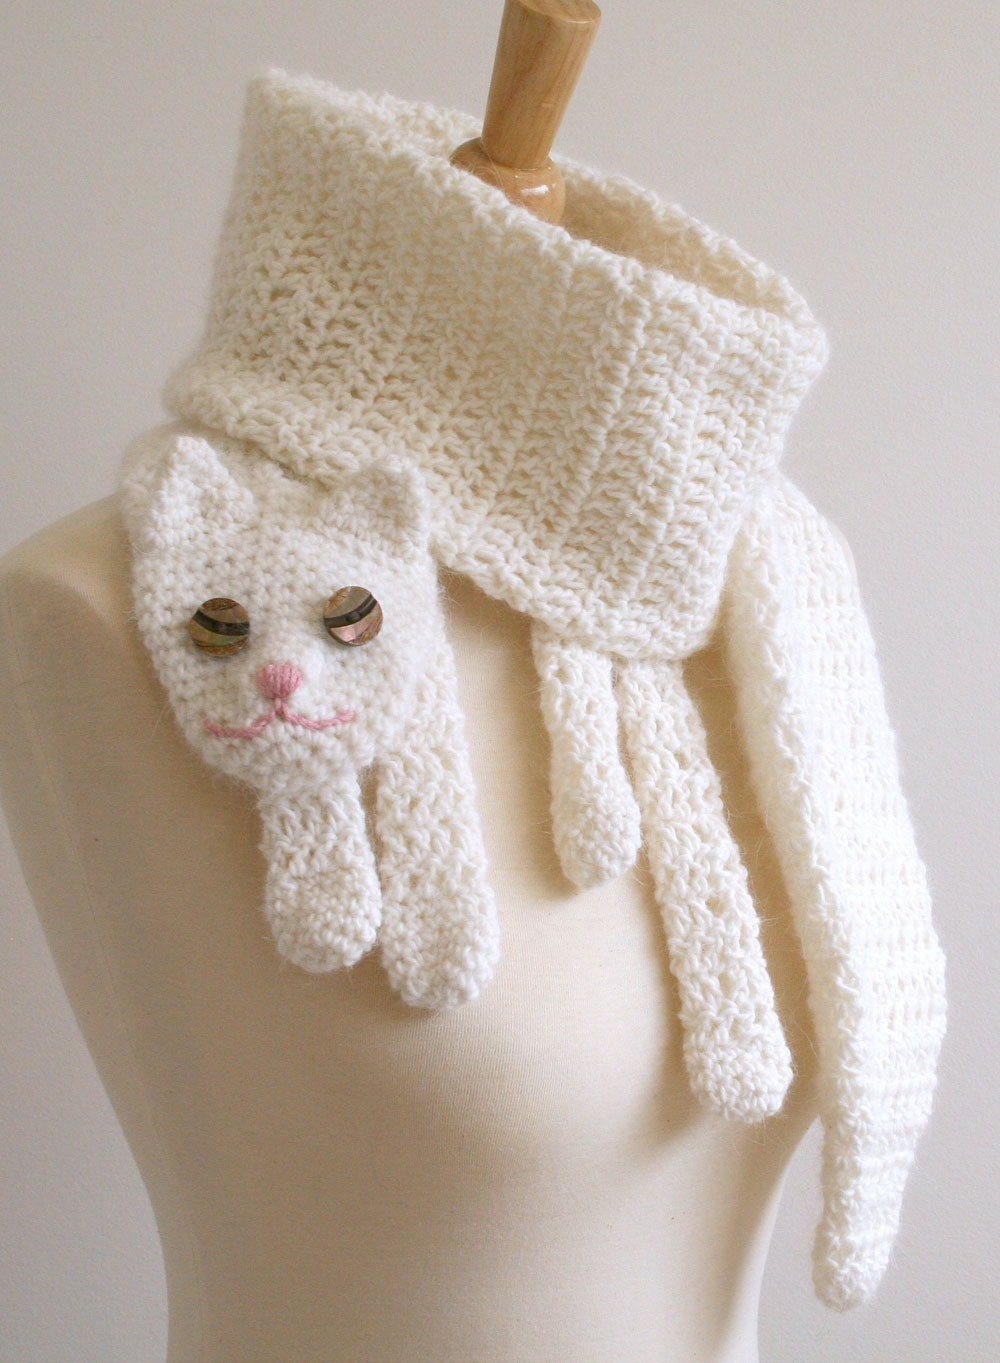 Cat Cuddler Scarf  Handmade  Crocheted  Animal Scarf Fashion  Crochet Animal Scarves For Kids